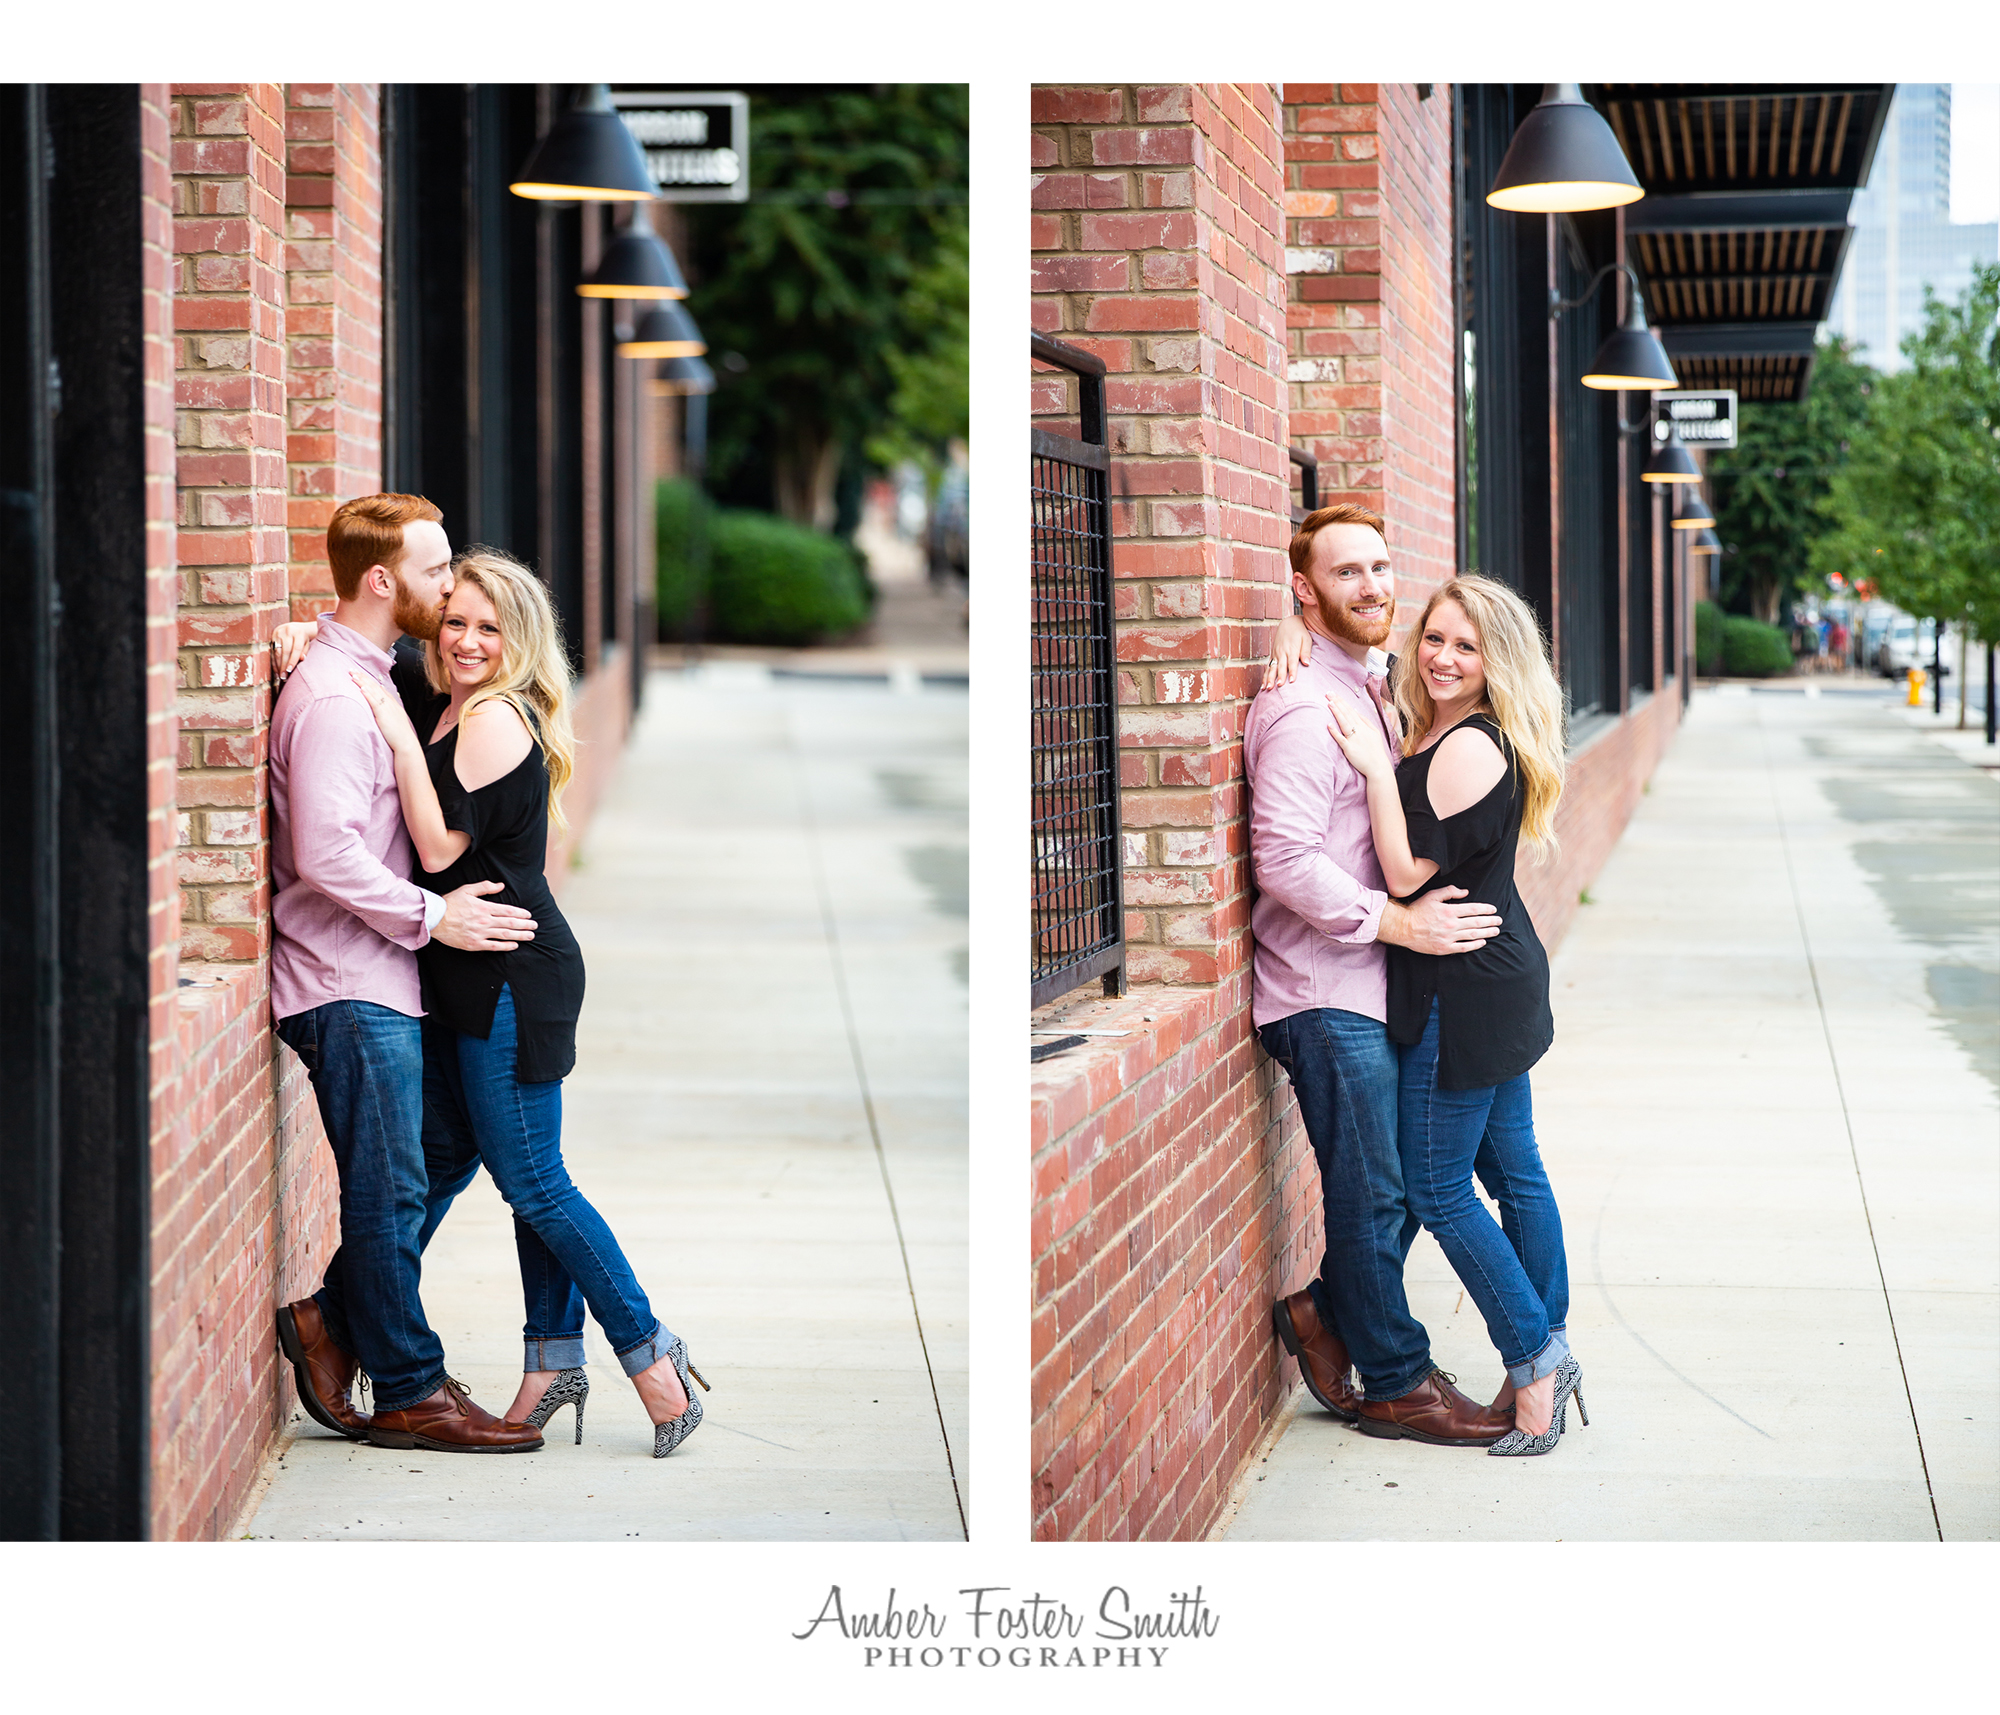 Amber Foster Smith Photography - Holly Springs, NC | Raleigh Wedding and Engagement Photography